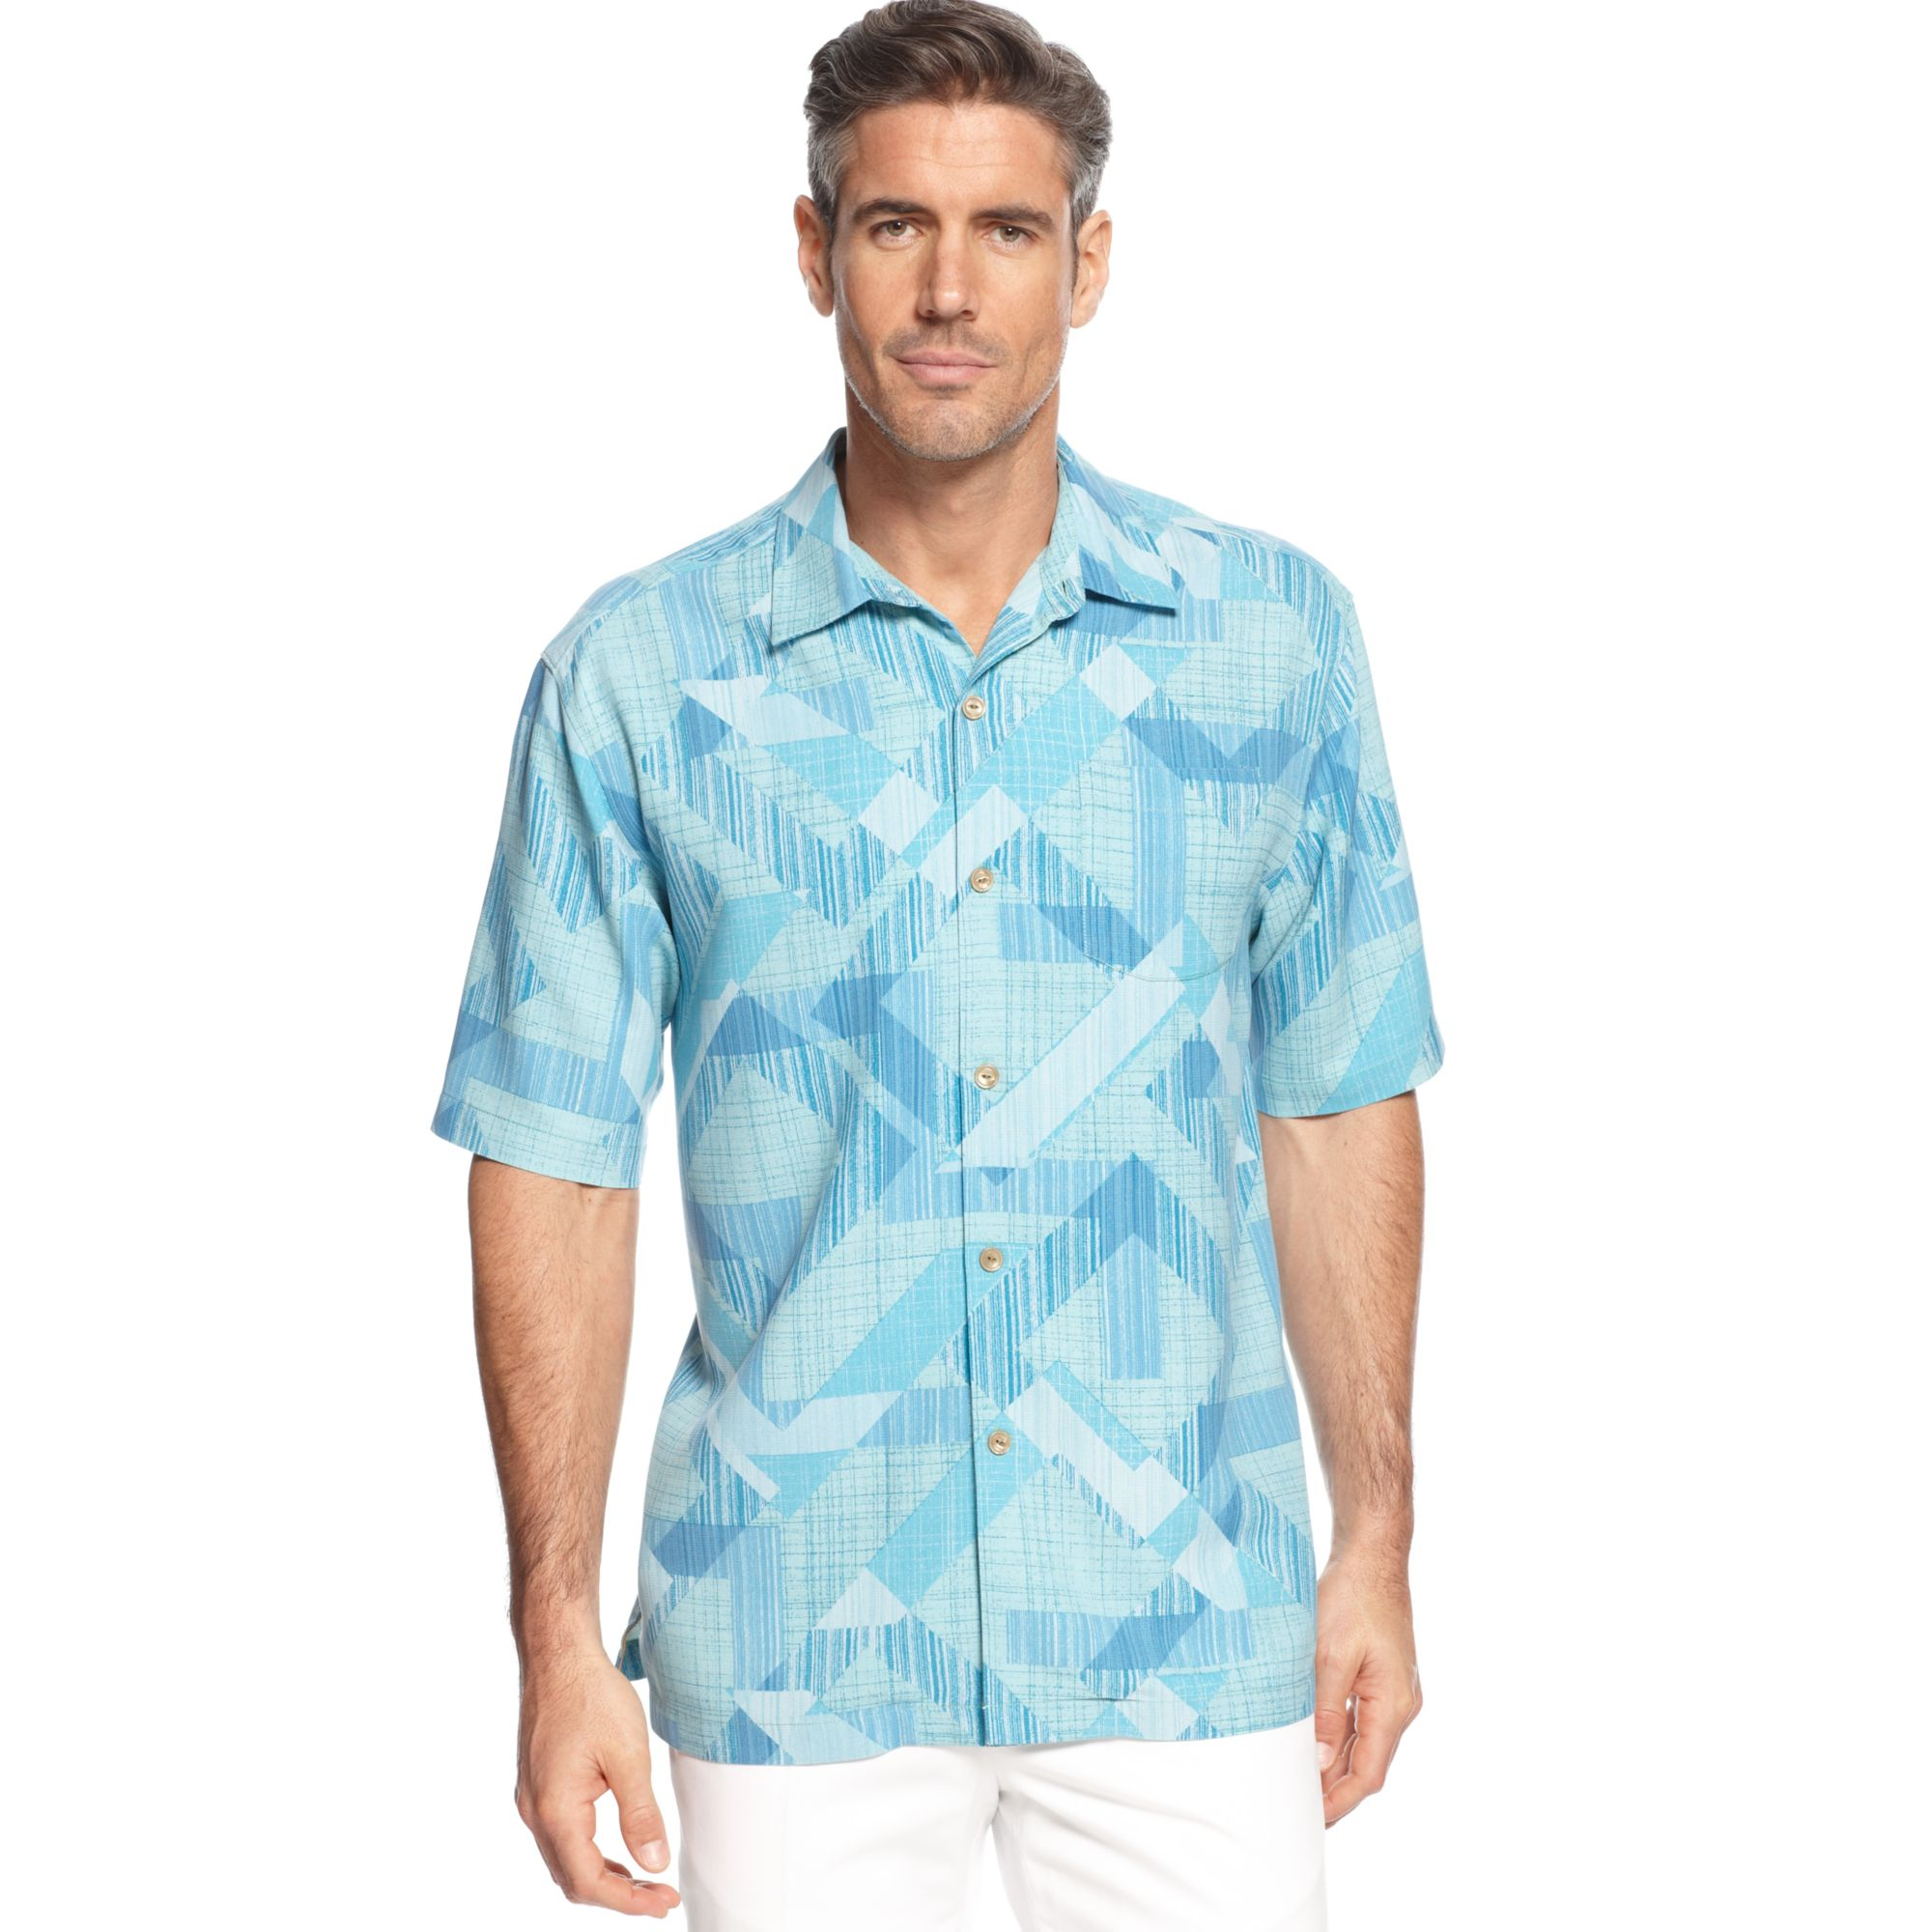 Tommy bahama santiago squares shirt in blue for men for Tommy bahama christmas shirt 2014